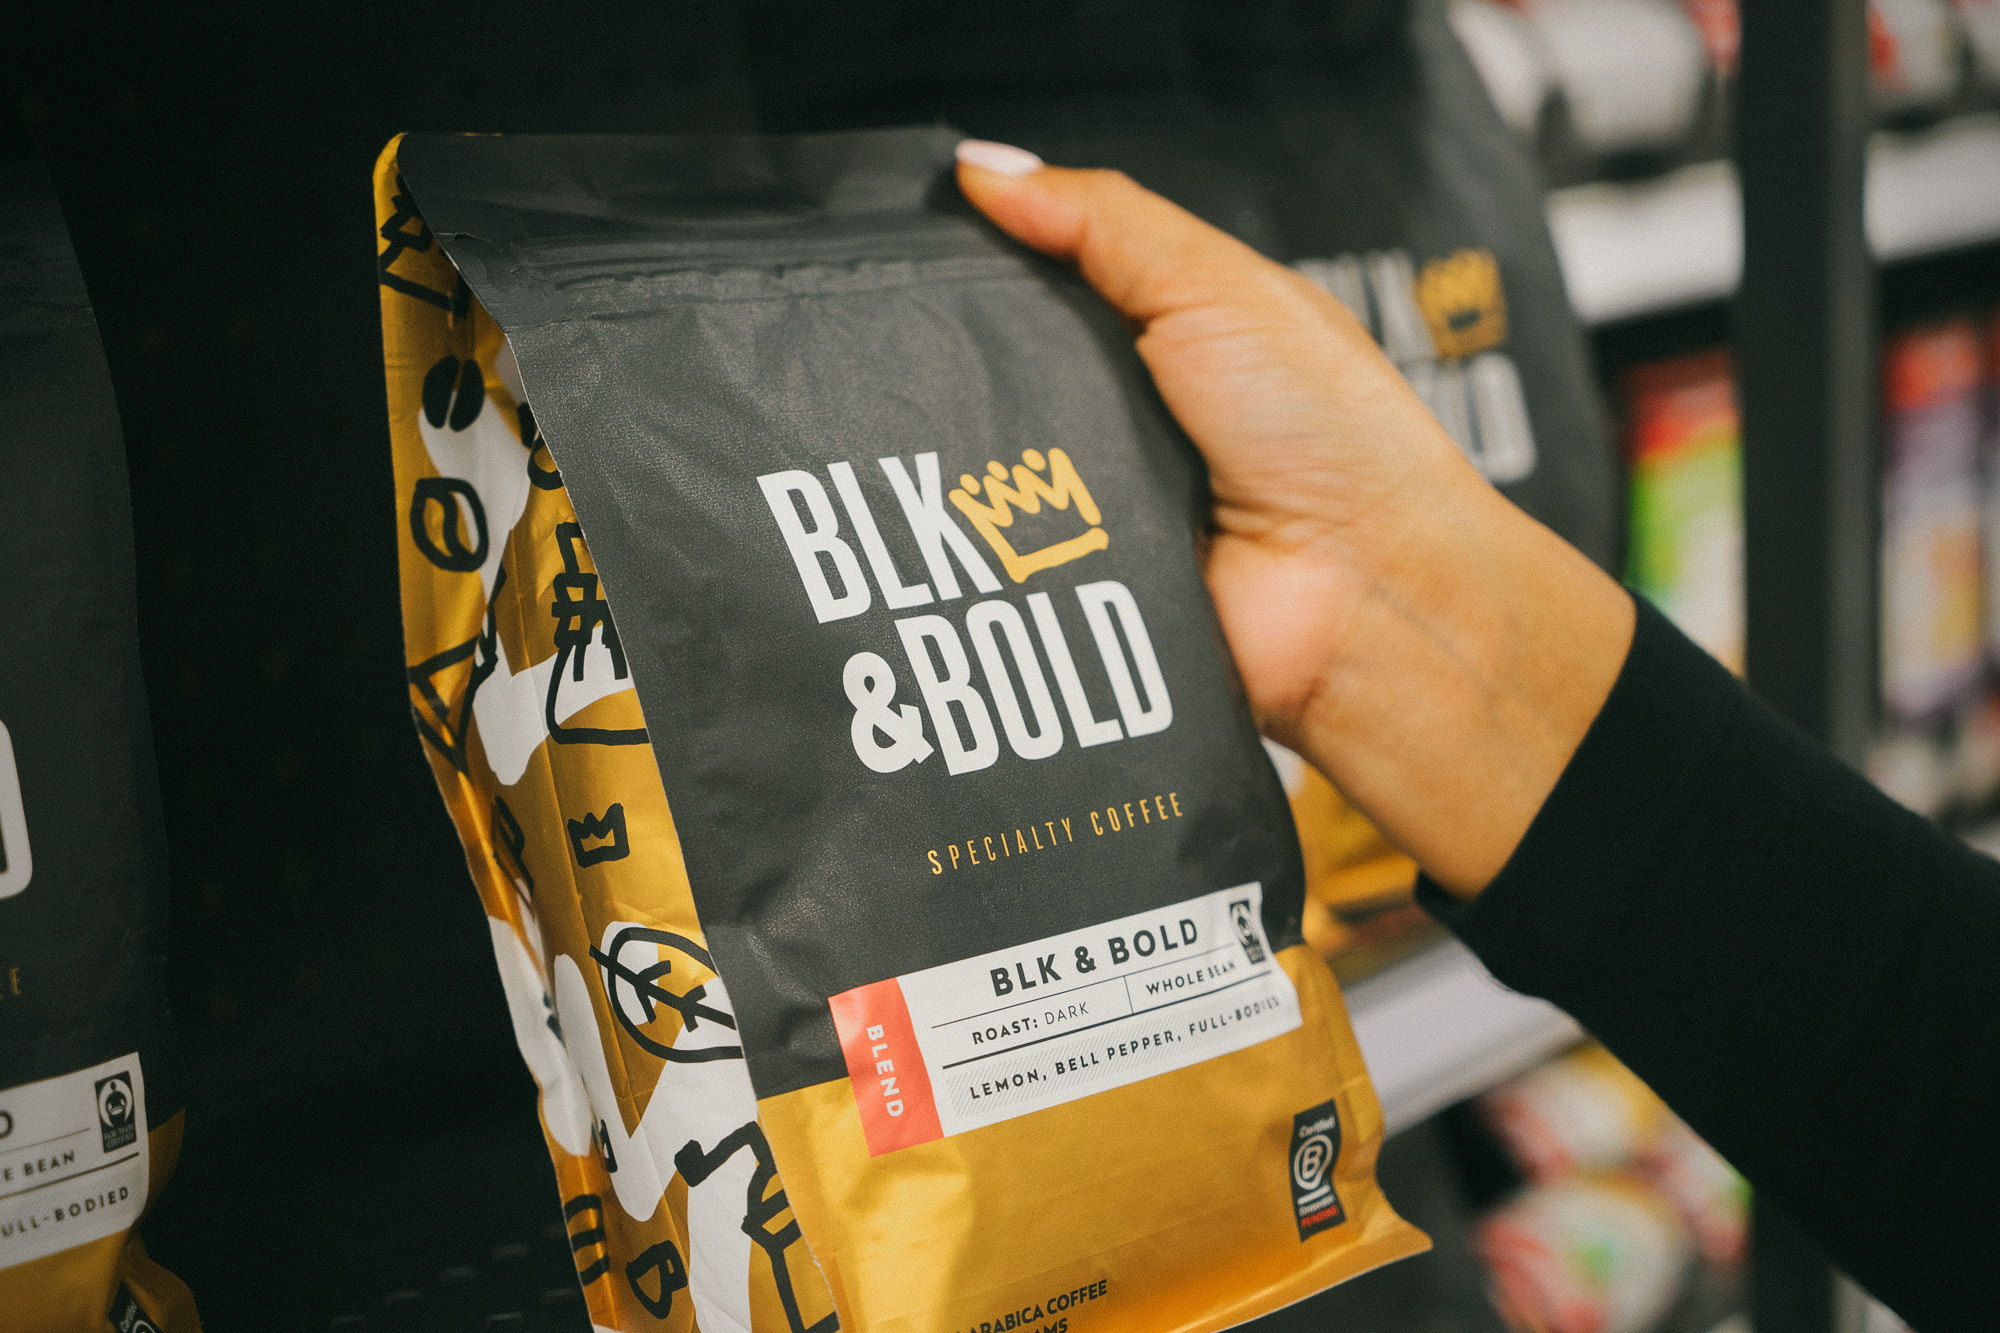 A package of BLK & Bold coffee held by a hand against some retail shelves.